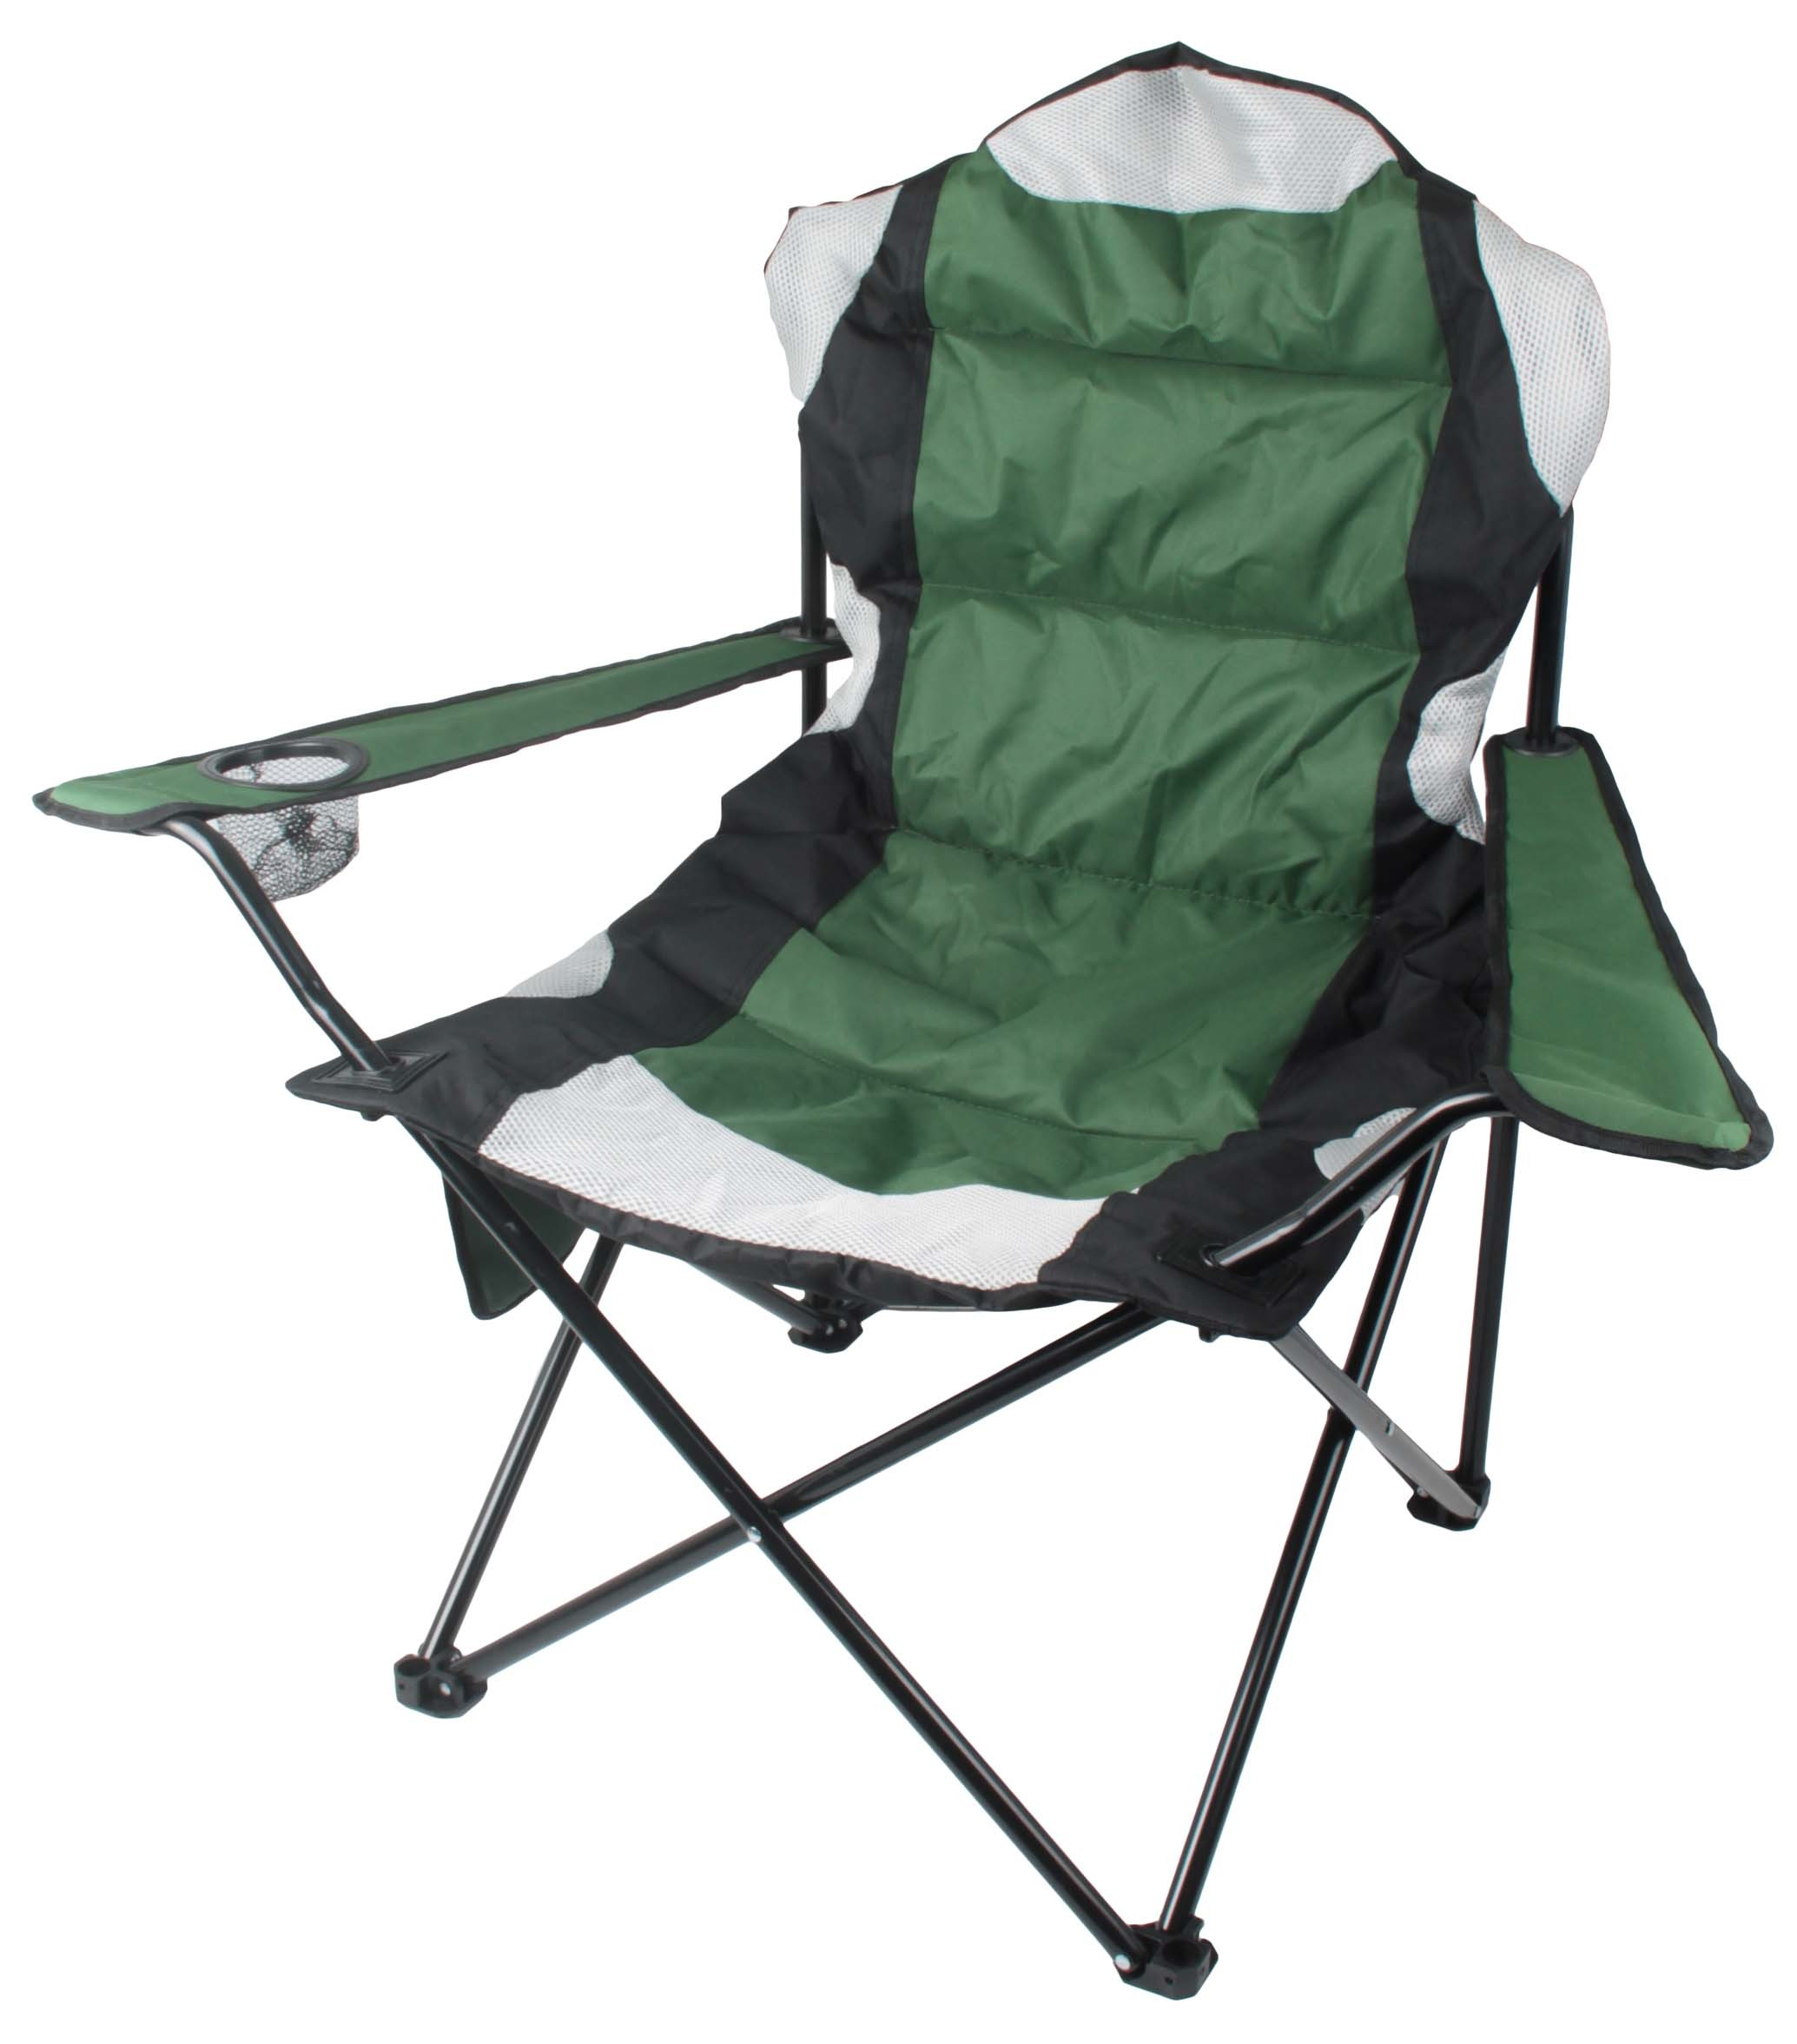 Camping Chair Heavy Duty Green